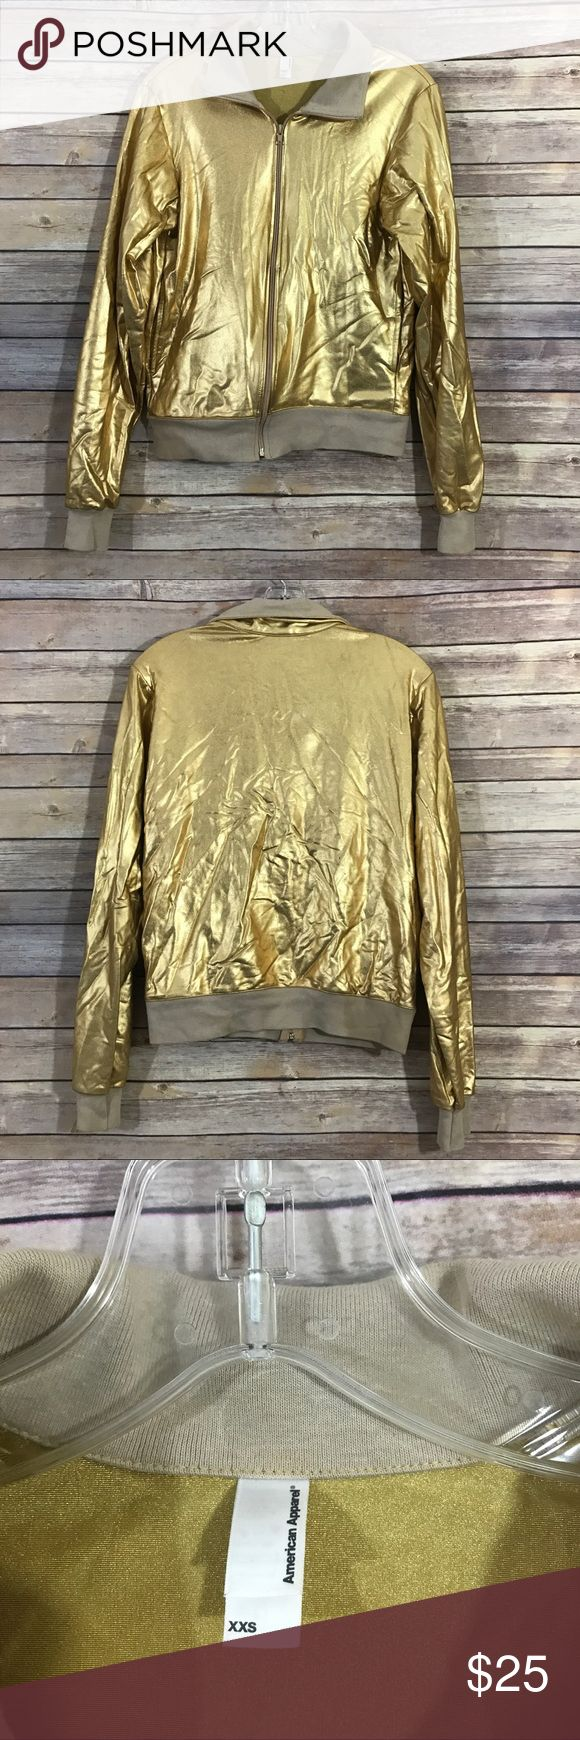 """American apparel gold lame zip up jacket XXS, 416 This American Apparel gold lame jacket is everything! It is so fun and has a standard zip up but no hood. It is in good preowned condition with no known flaws and light overall wear. This jacket is a size XXS measuring 16"""" flat across the bust and is 23"""" long. American Apparel Jackets & Coats"""